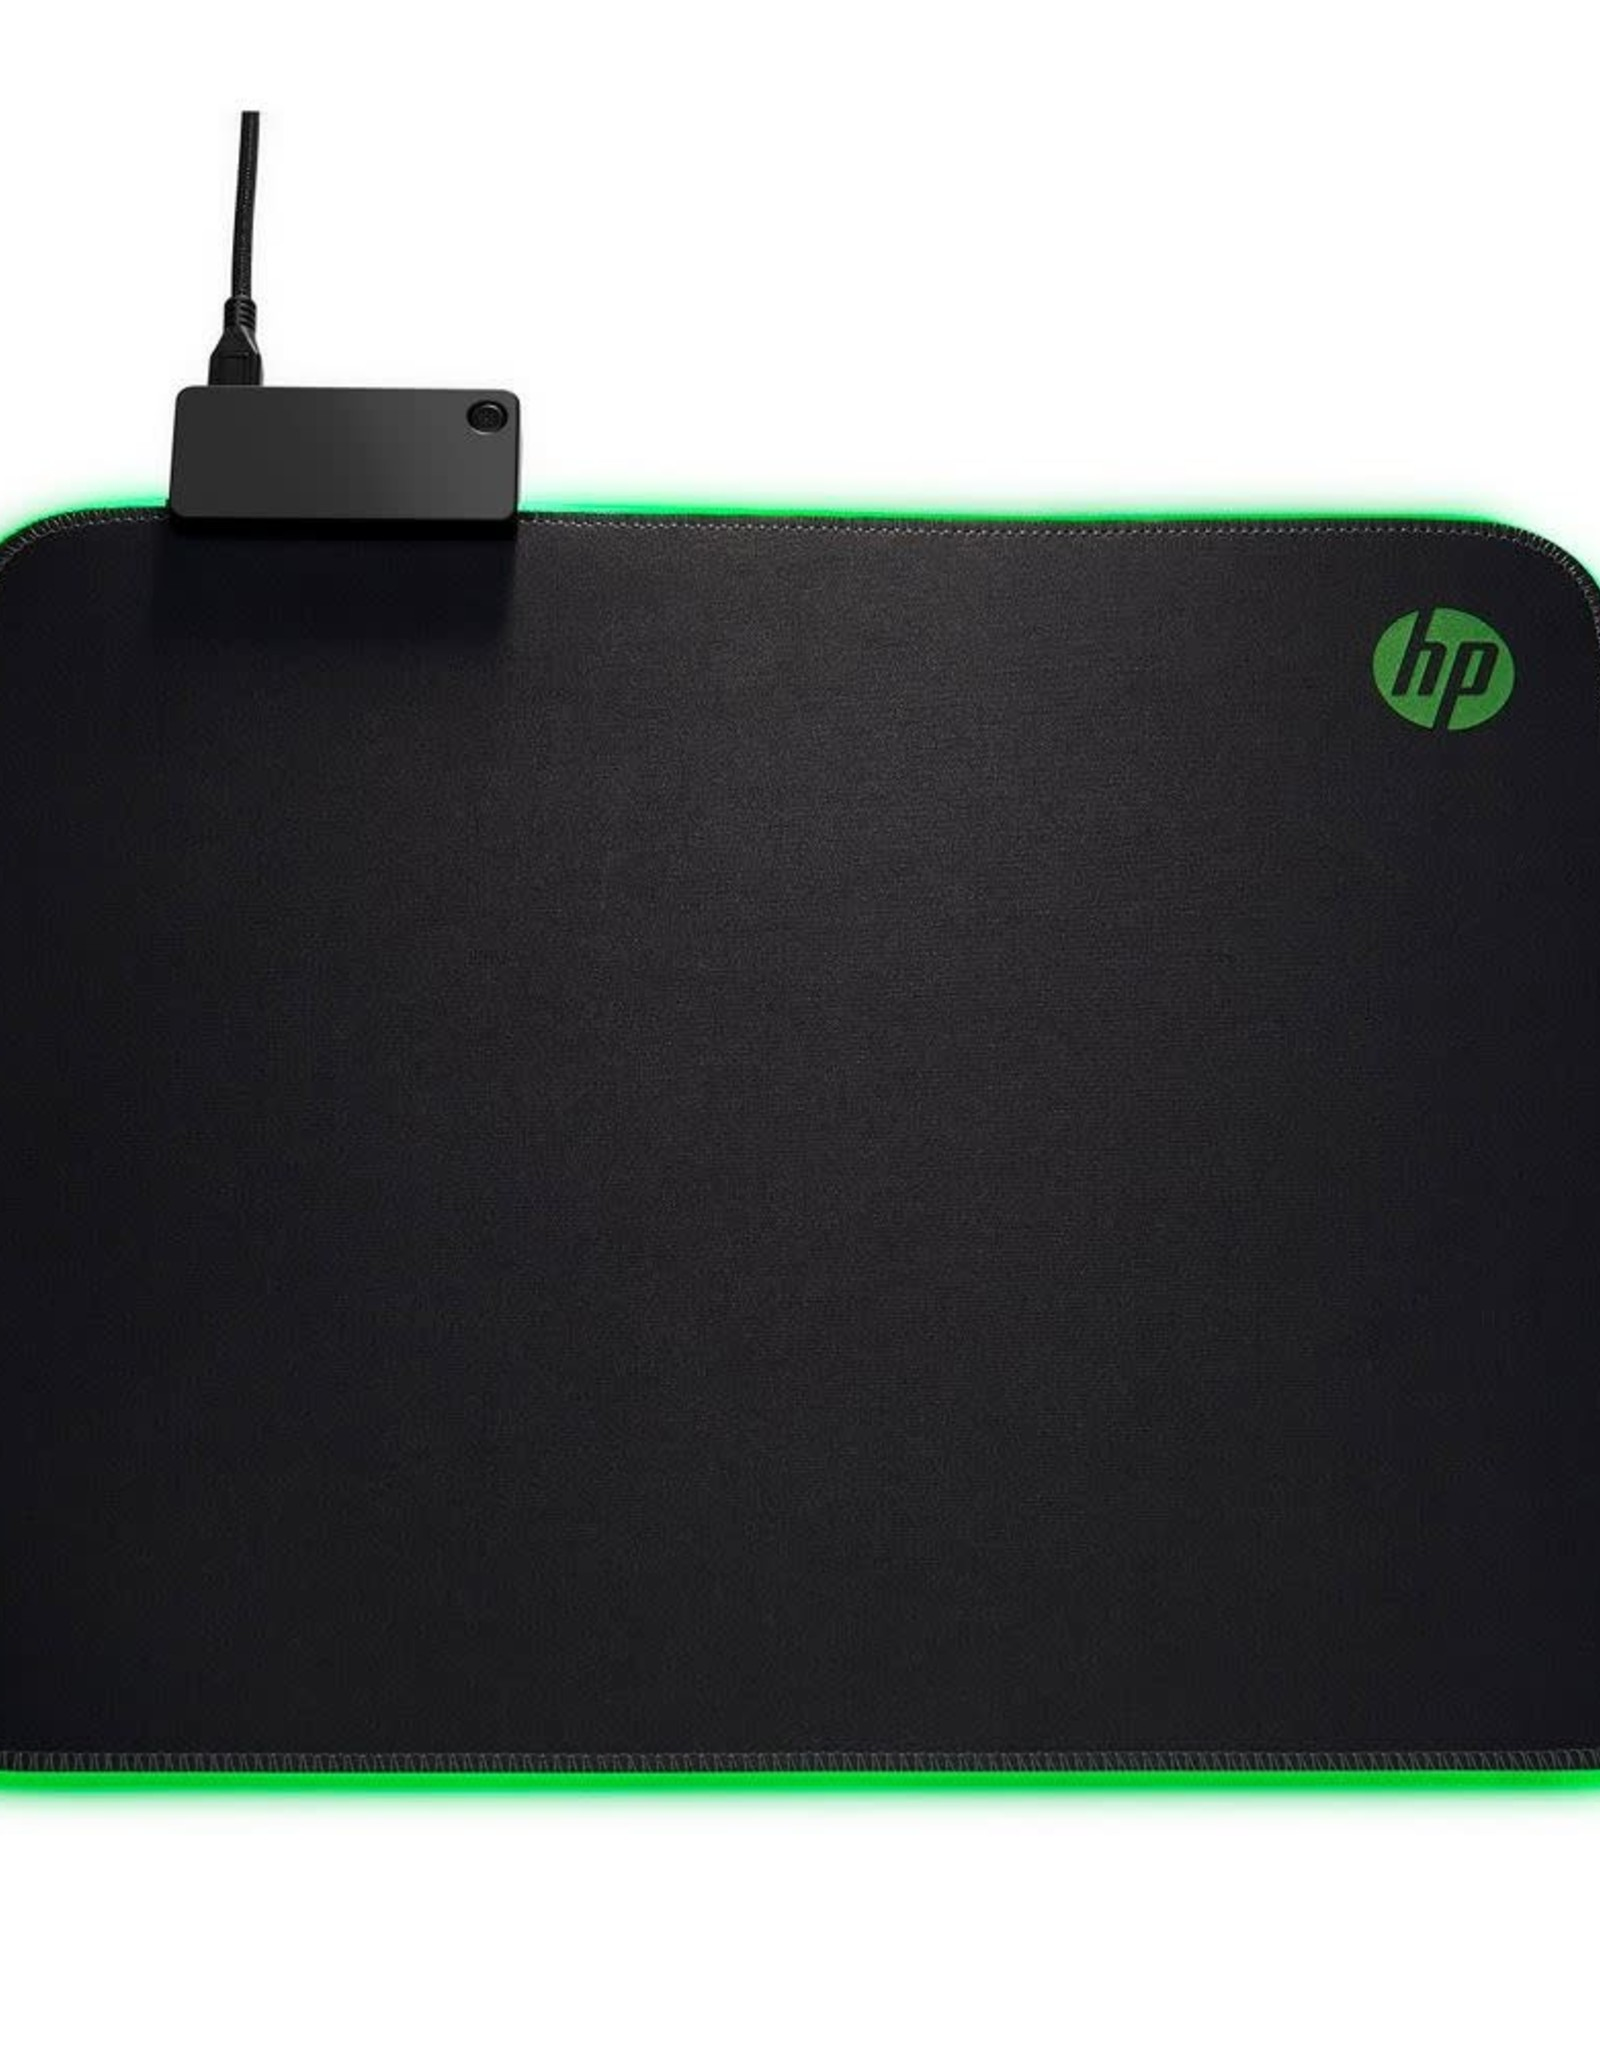 HP HP Pavilion Gaming Mouse Pad 400 5JH72AA#ABL